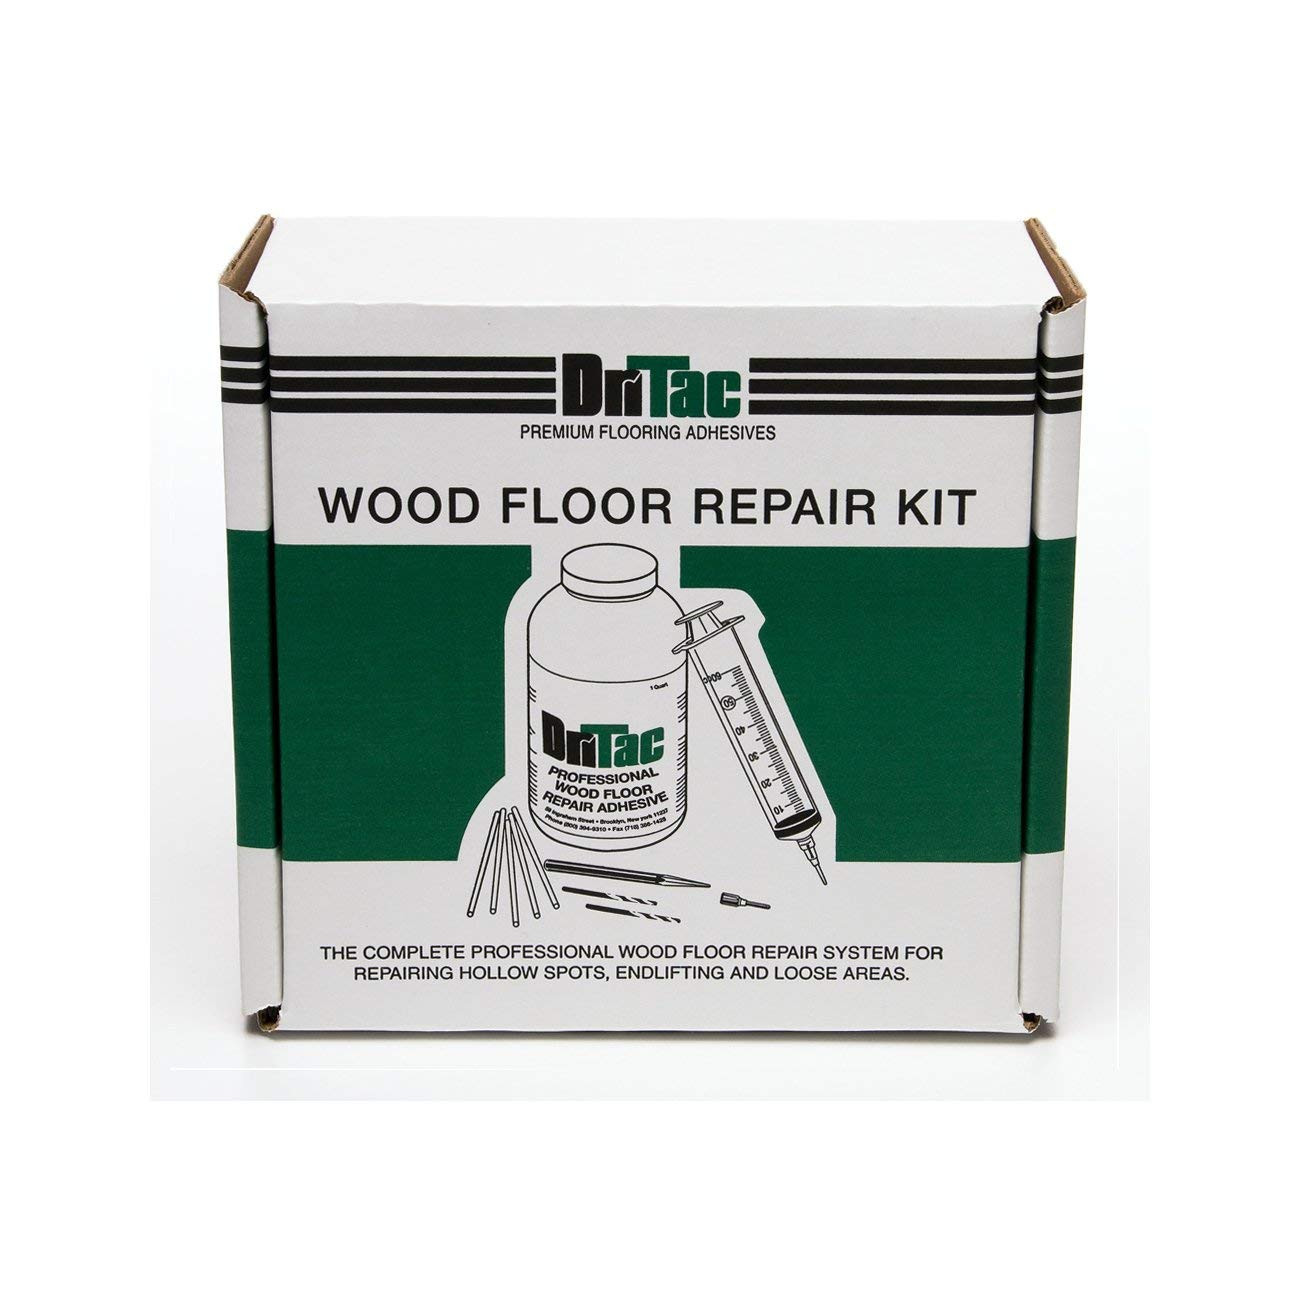 how to install hardwood floors on concrete without glue of amazon com dritac wood floor repair kit engineered flooring only within amazon com dritac wood floor repair kit engineered flooring only 32oz home kitchen